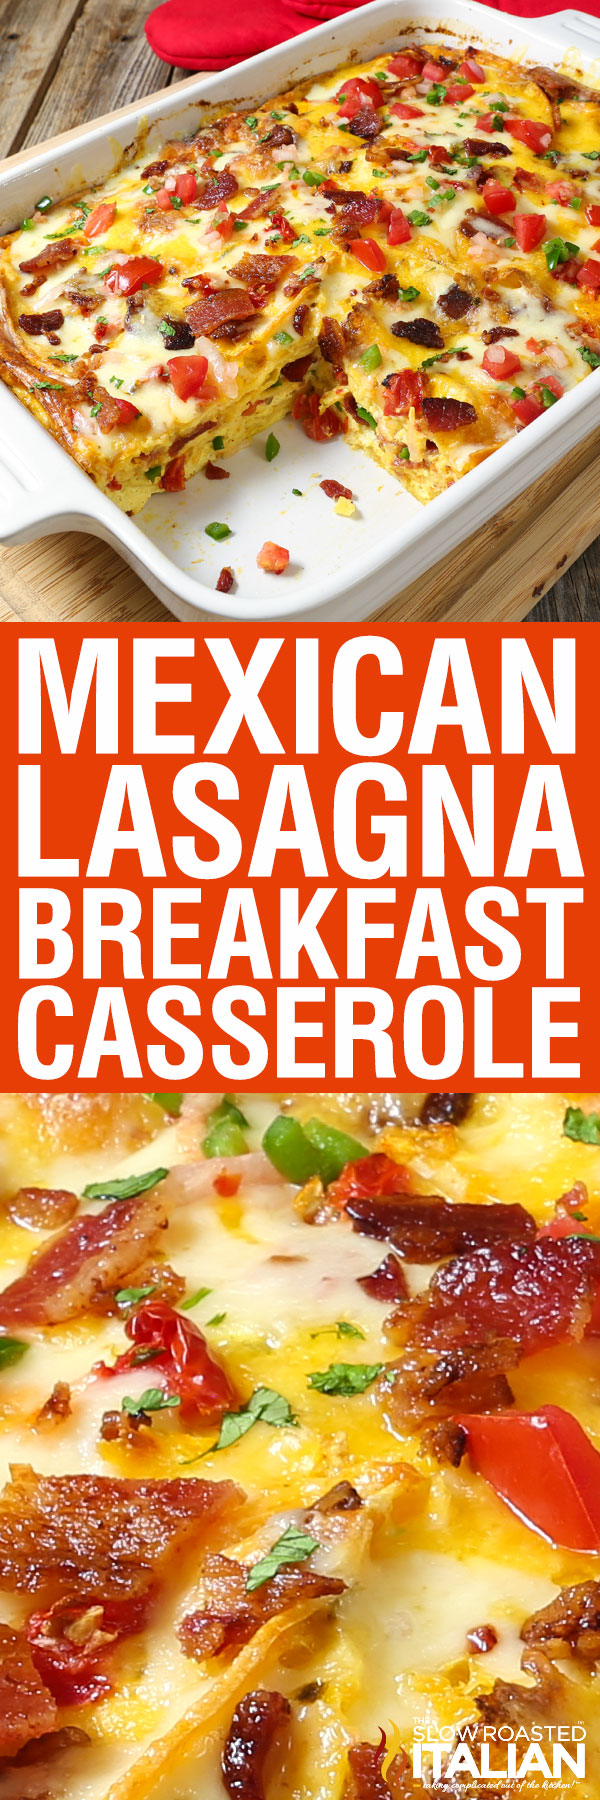 titled image (and shown): Mexican Lasagna Breakfast Casserole